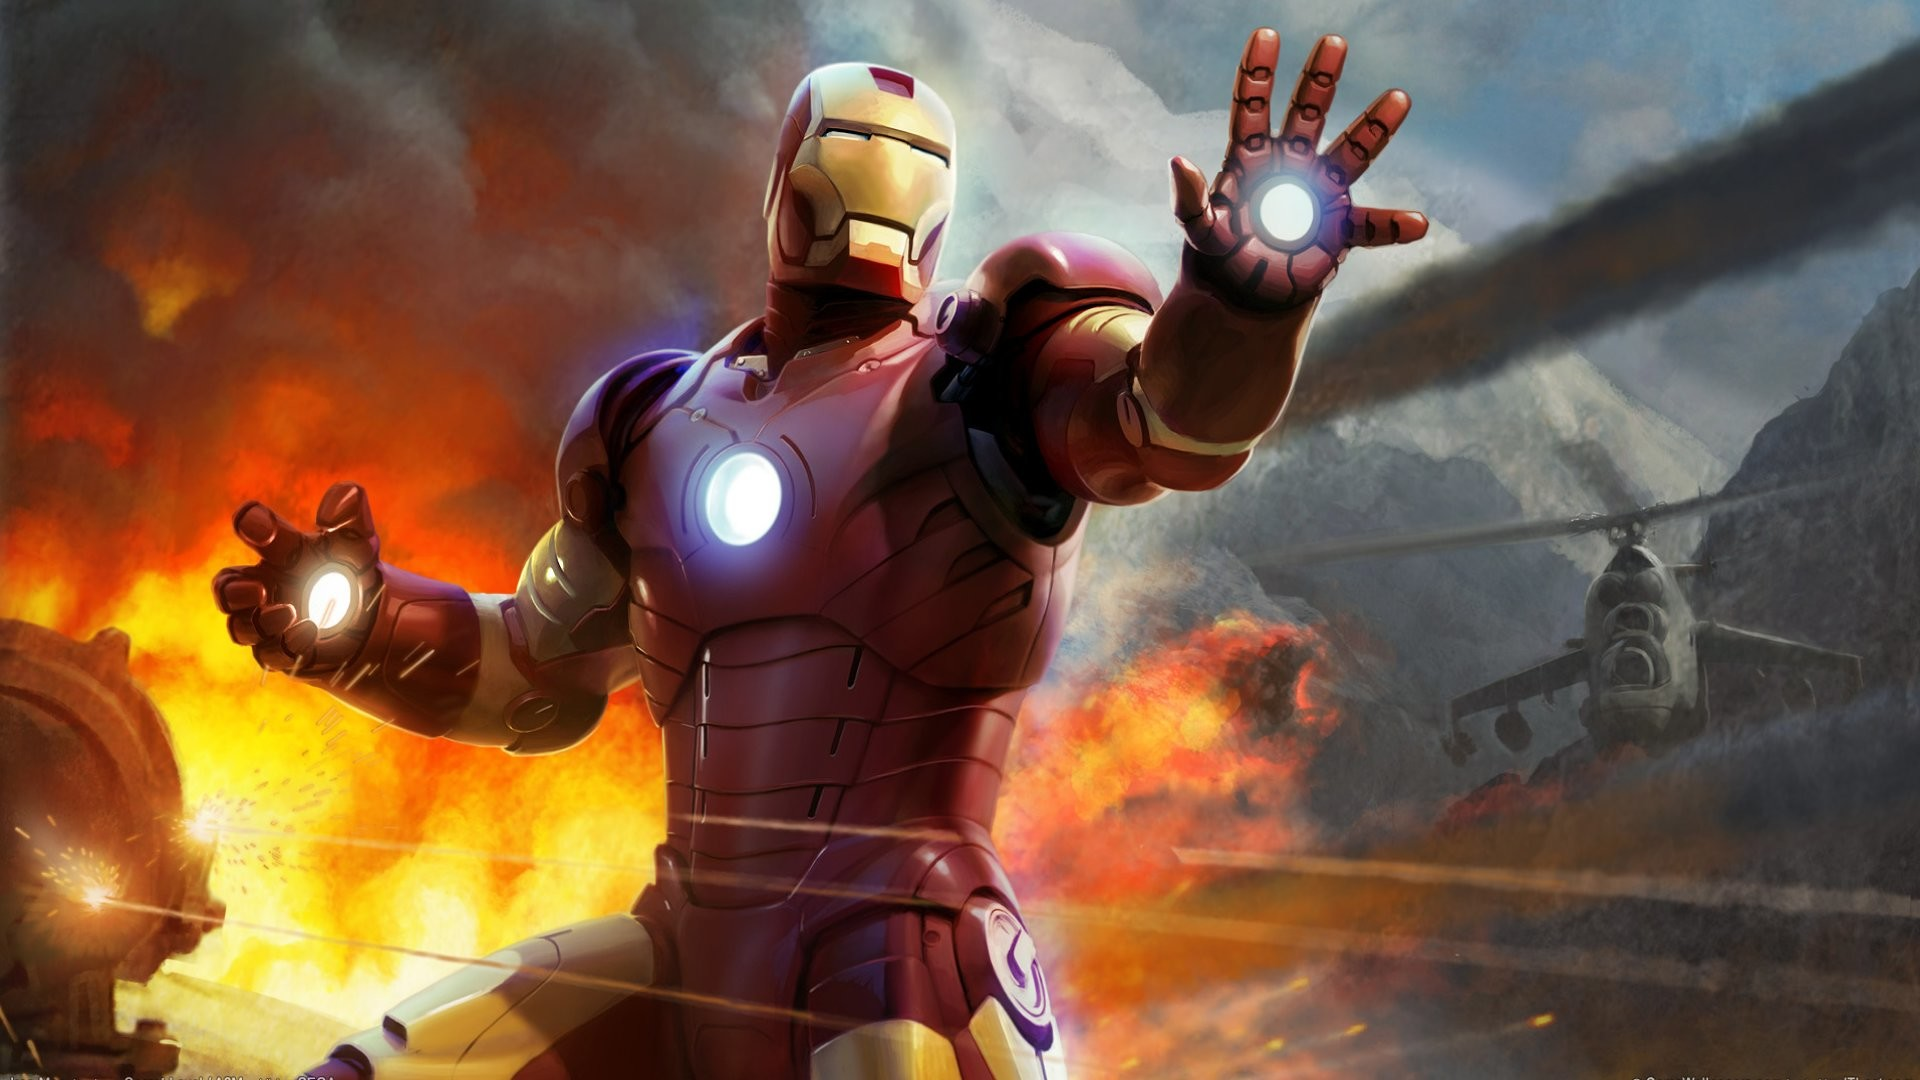 Res: 1920x1080, Iron Man Images Desktop HD.